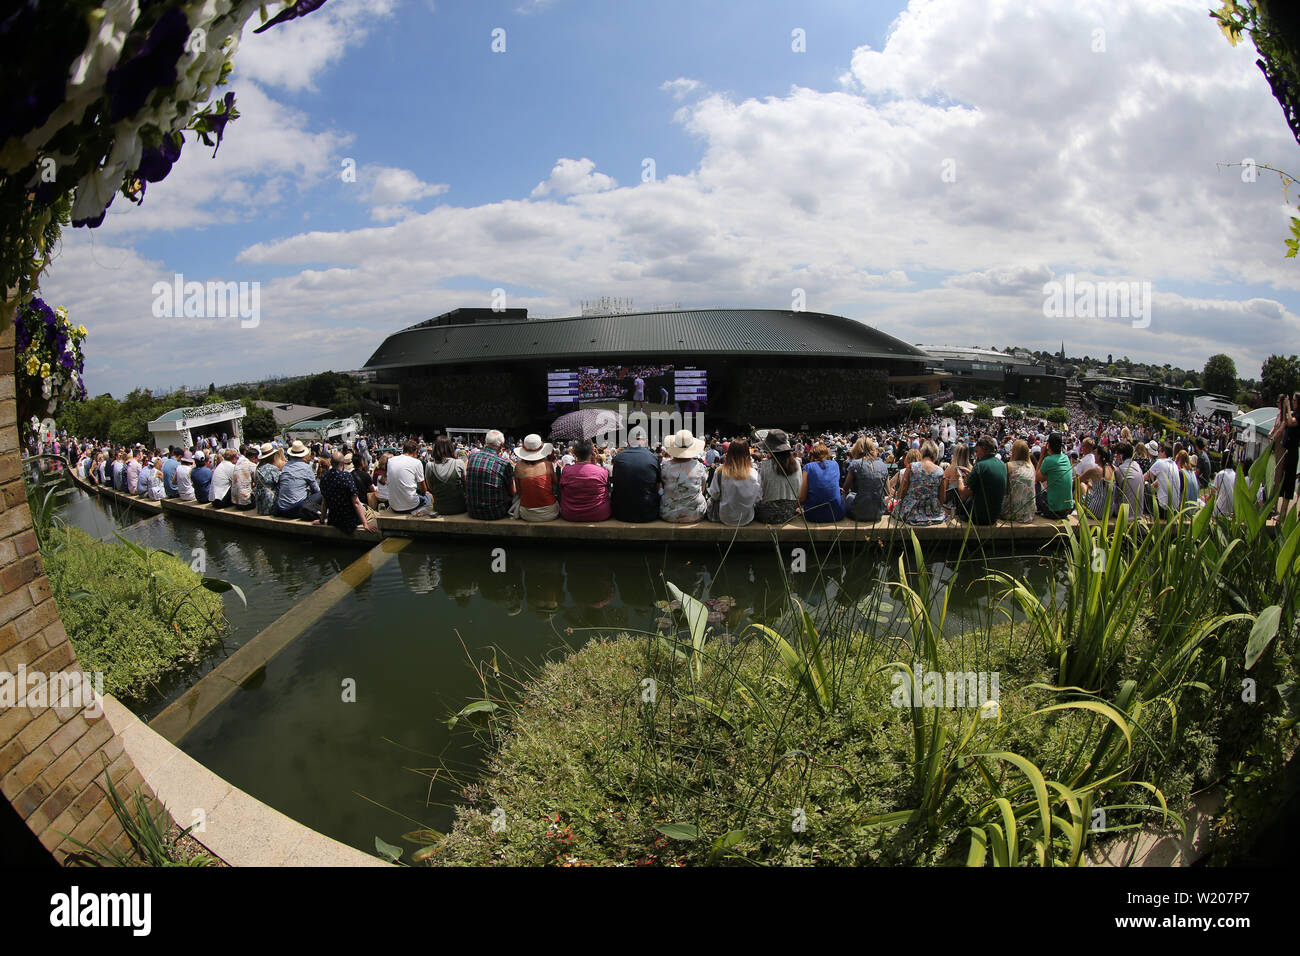 London, UK. 3rd July, 2019. A general view of spectators watching the big screen on the hill. Credit: Andrew Patron/ZUMA Wire/Alamy Live News Stock Photo